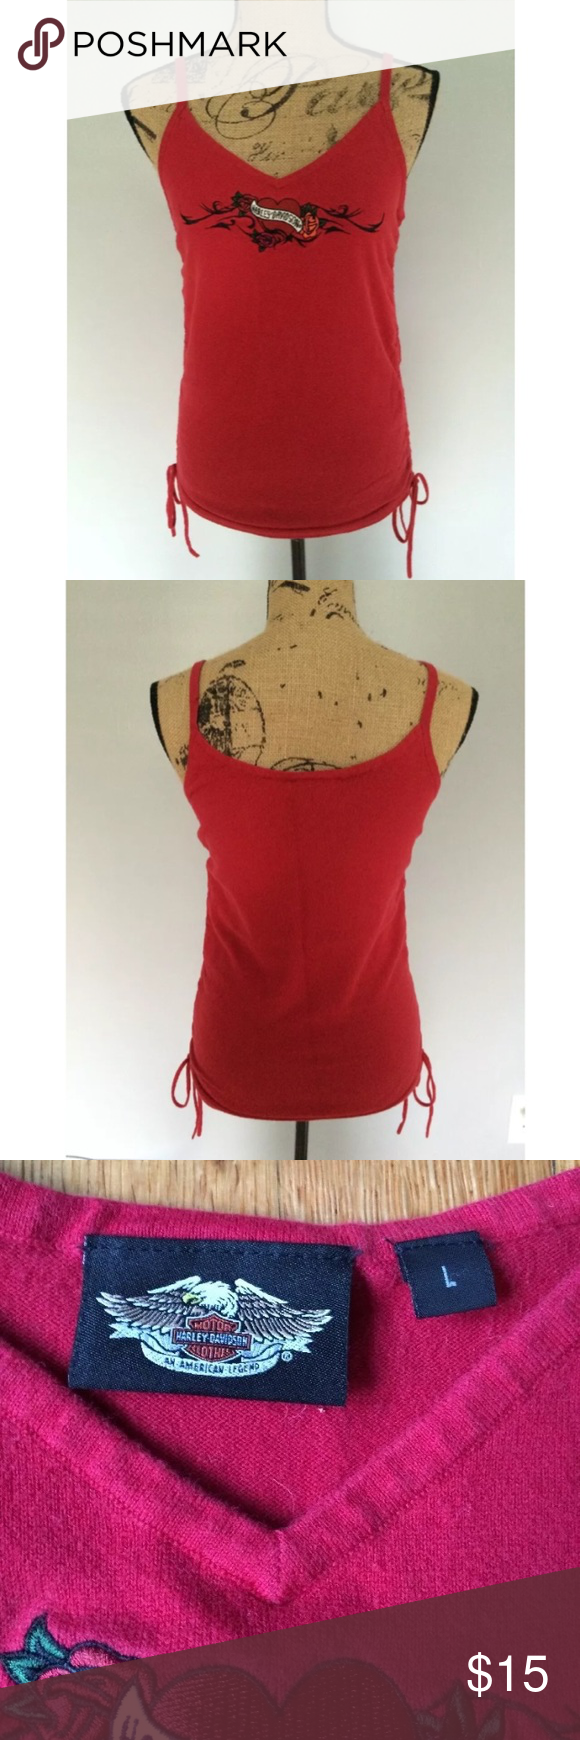 Harley Davidson Red Tank Top Cami size Large There is some wash wear, but it is still in great condition. It runs a bit small in my opinion Harley-Davidson Tops Tank Tops